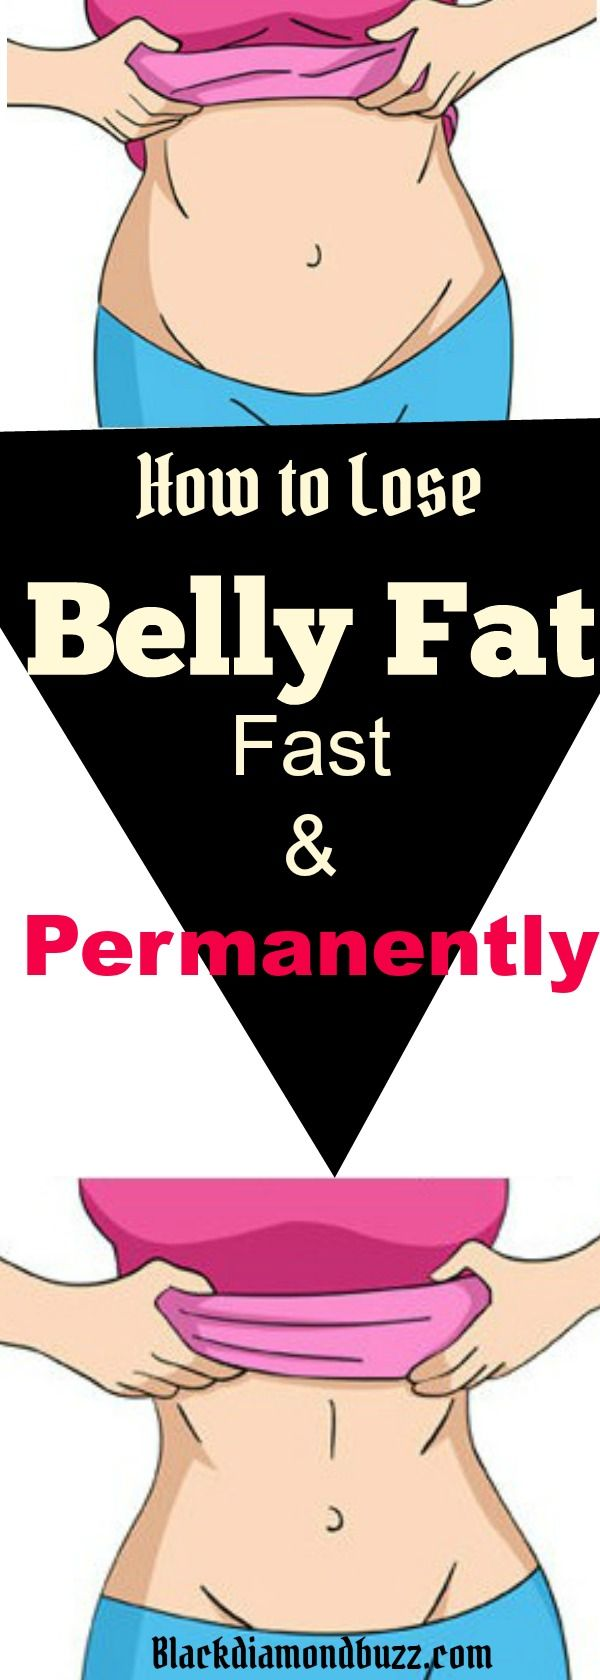 5 foods that help burn abdominal fat picture 4